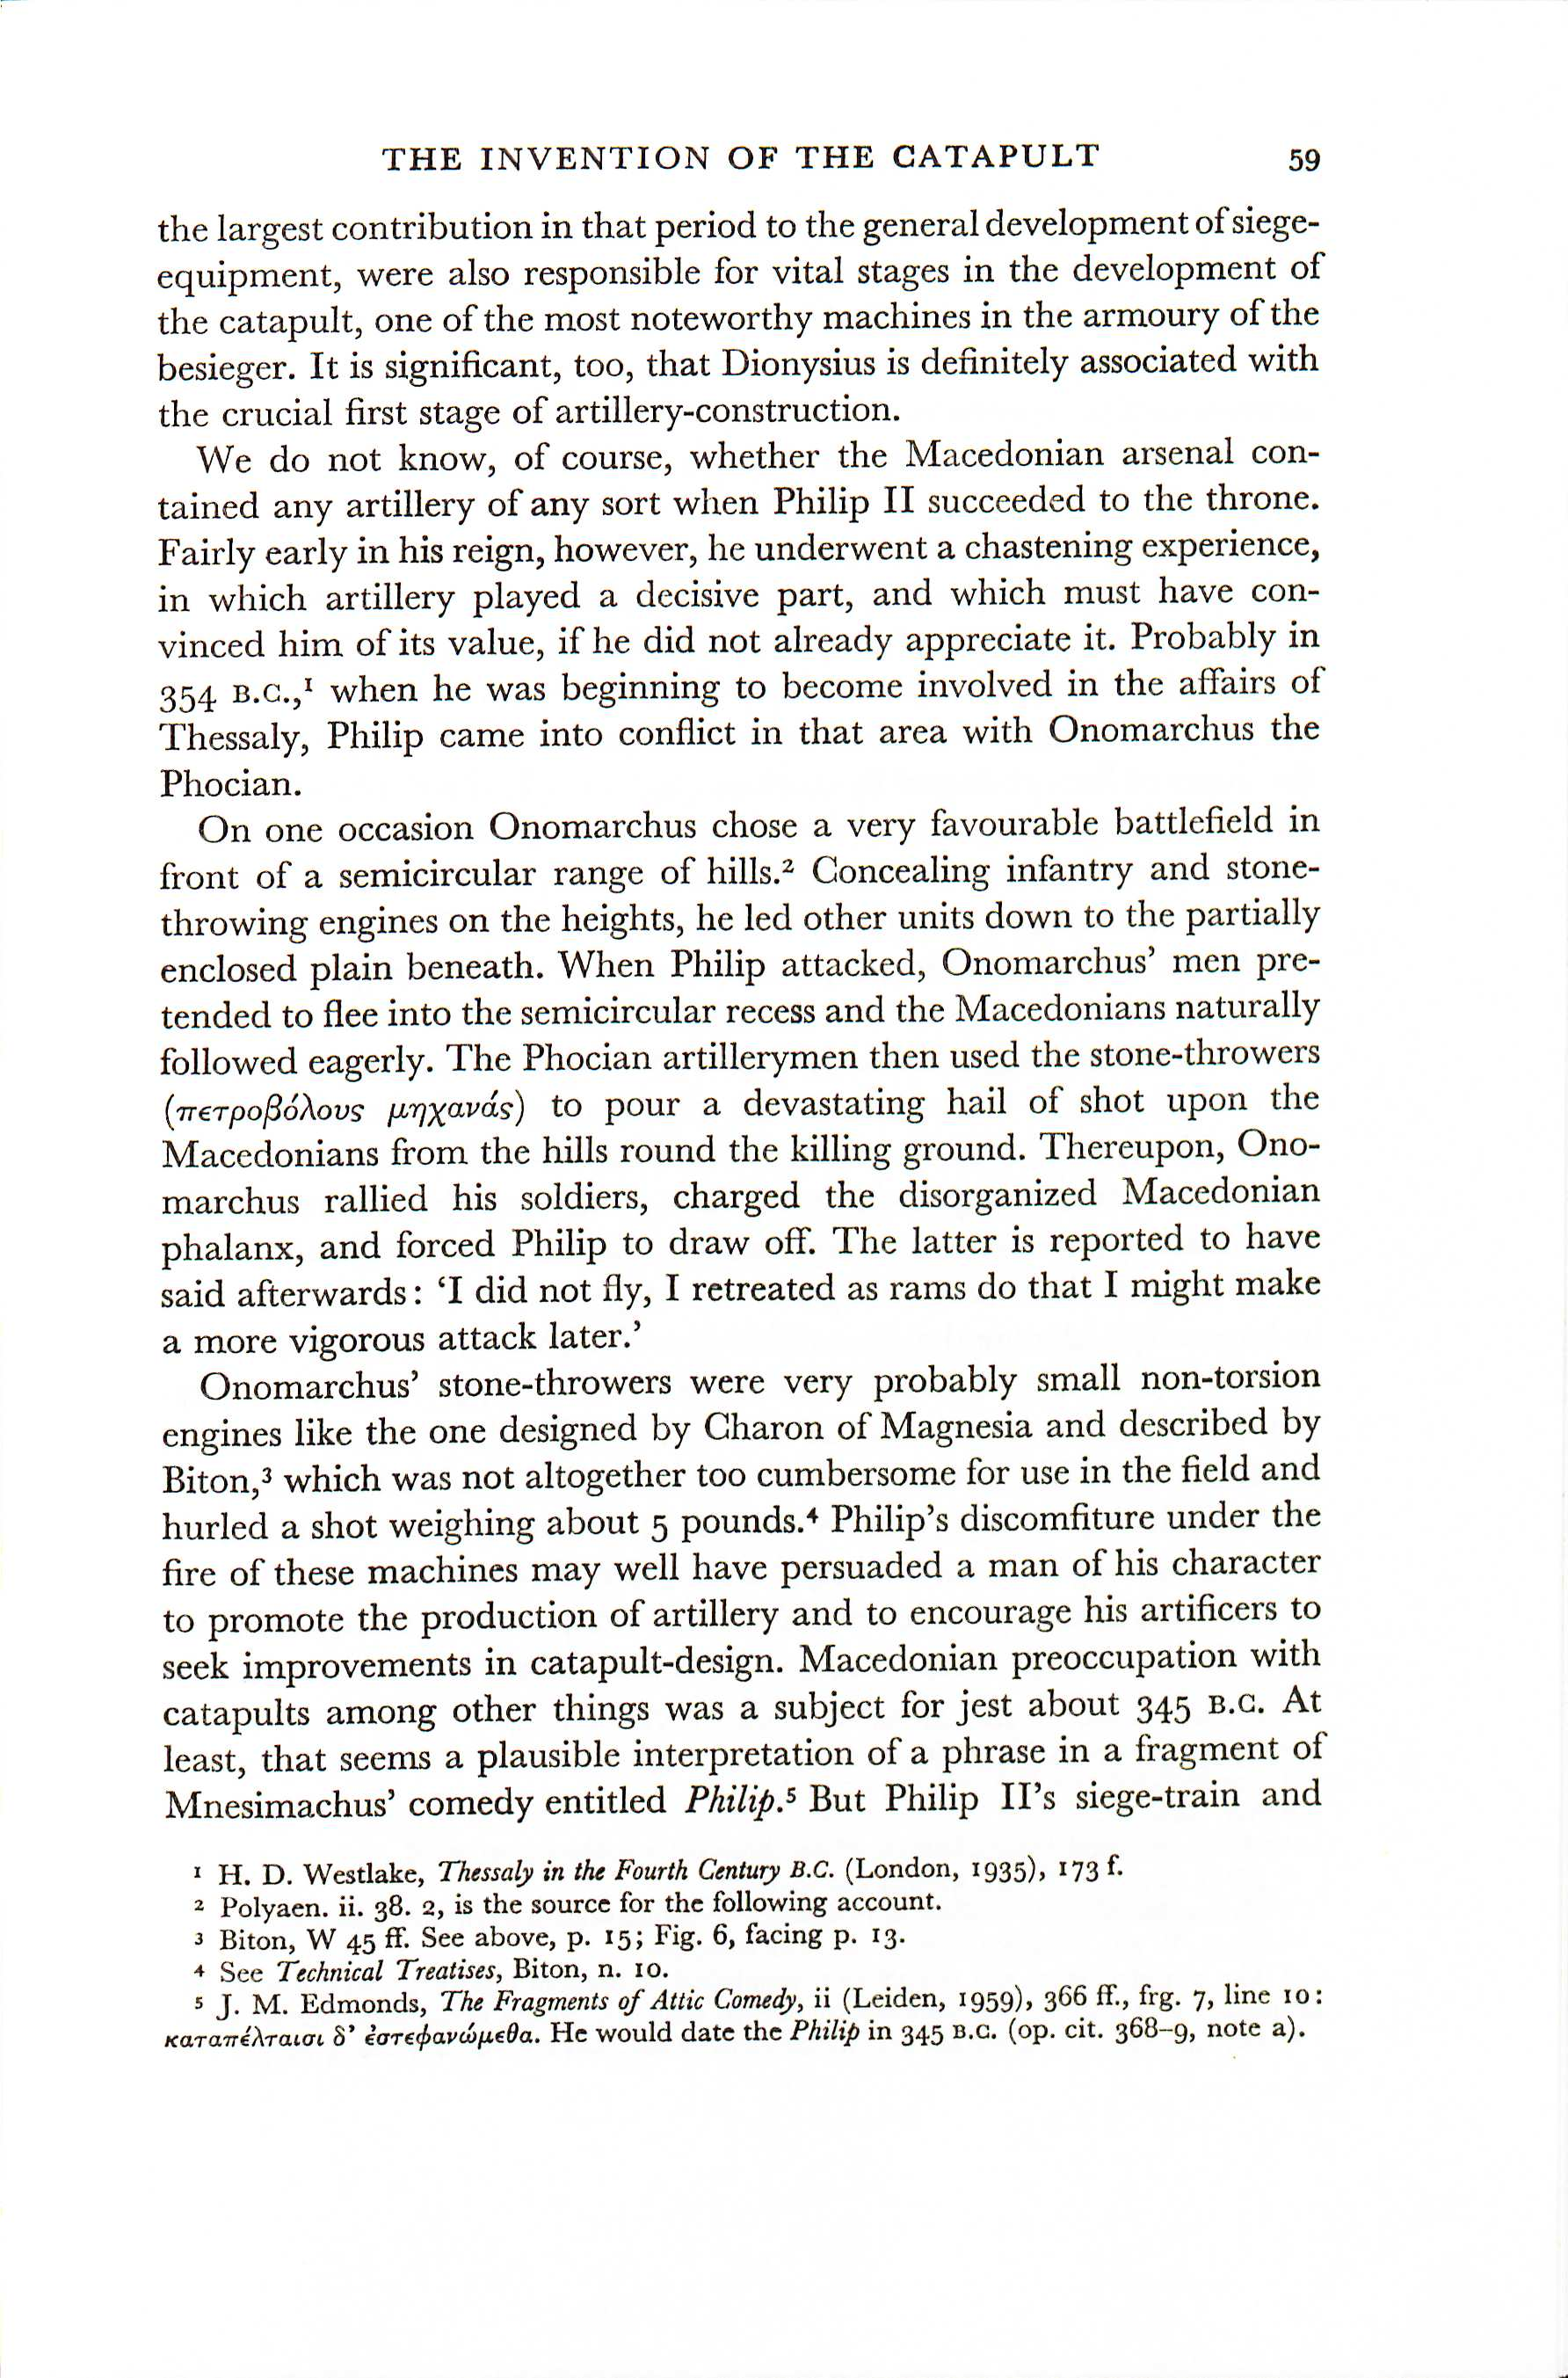 """Edit 2016-11-25: The fateful page of Marsden's book.  """"Concealing infantry and stone-throwing engines on the heights, he lead other units down to the partially enclosed plains beneath"""" agrees perfectly with the Greek of the Byzantine excepts but not with what the main editor thinks Polyaenus himself wrote."""